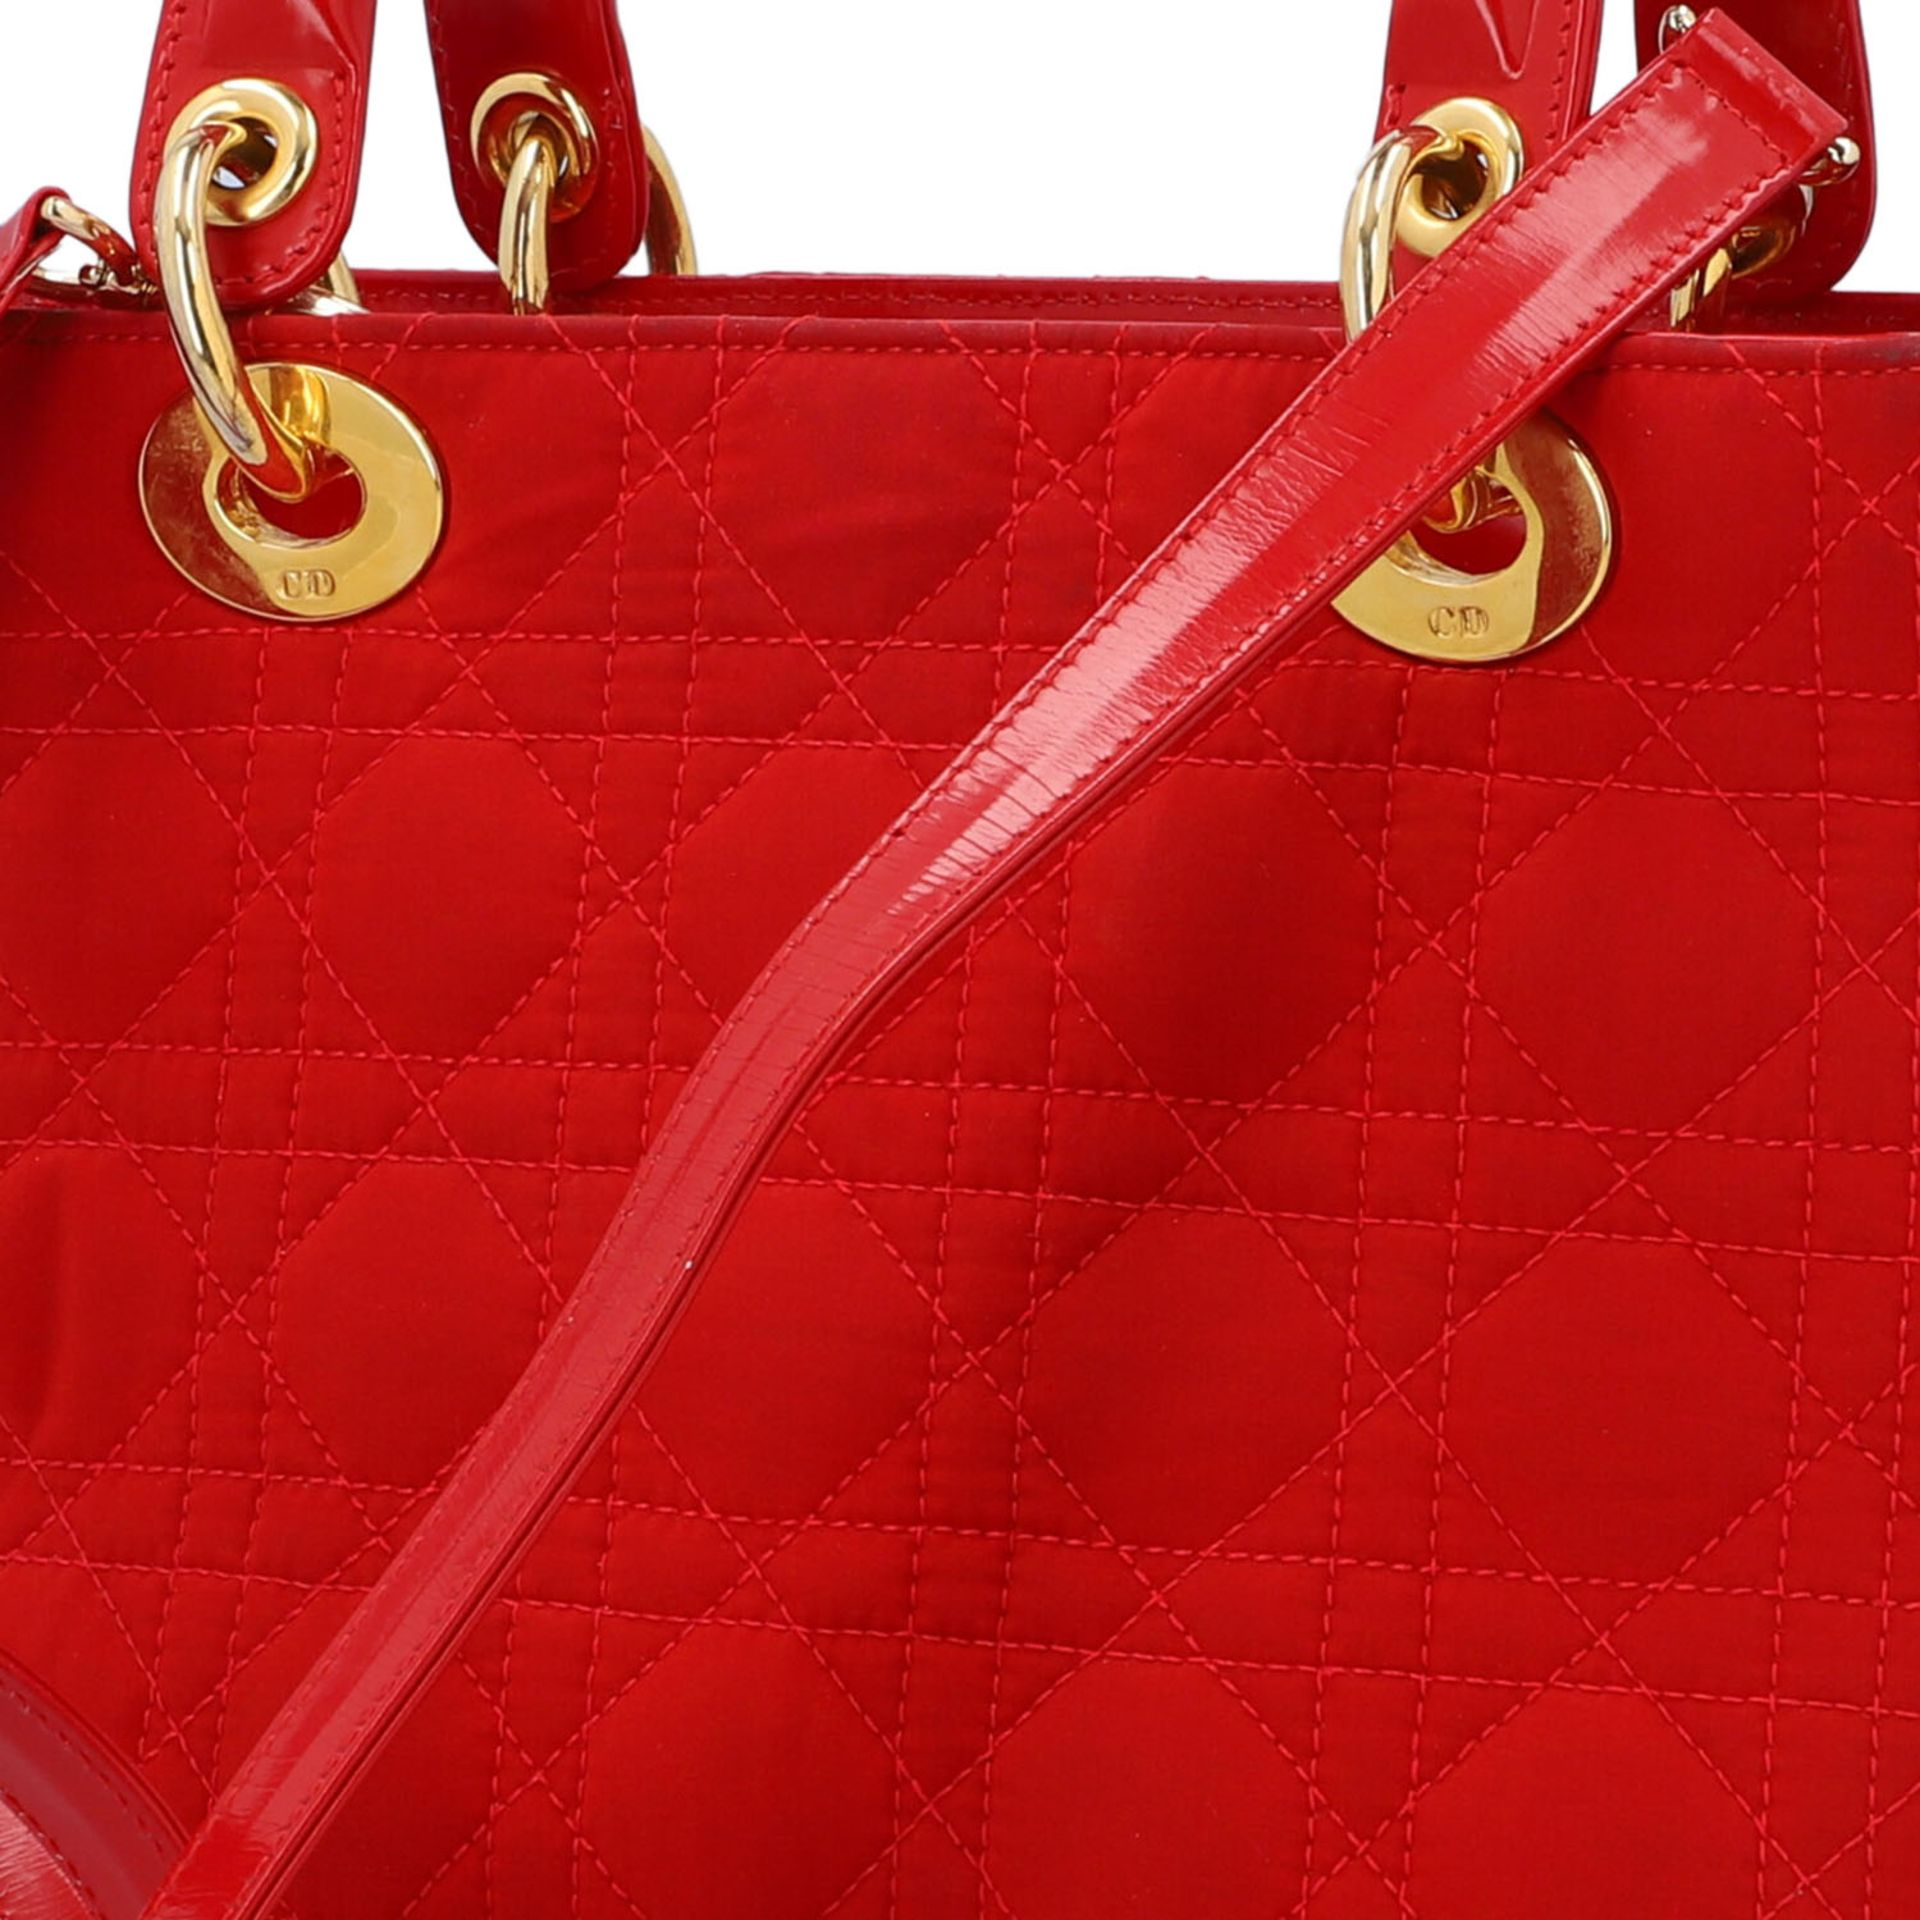 """CHRISTIAN DIOR Henkeltasche """"LADY DIOR"""", Koll.: 1997. Textil in Rot mit Cannage Steppu - Image 7 of 8"""